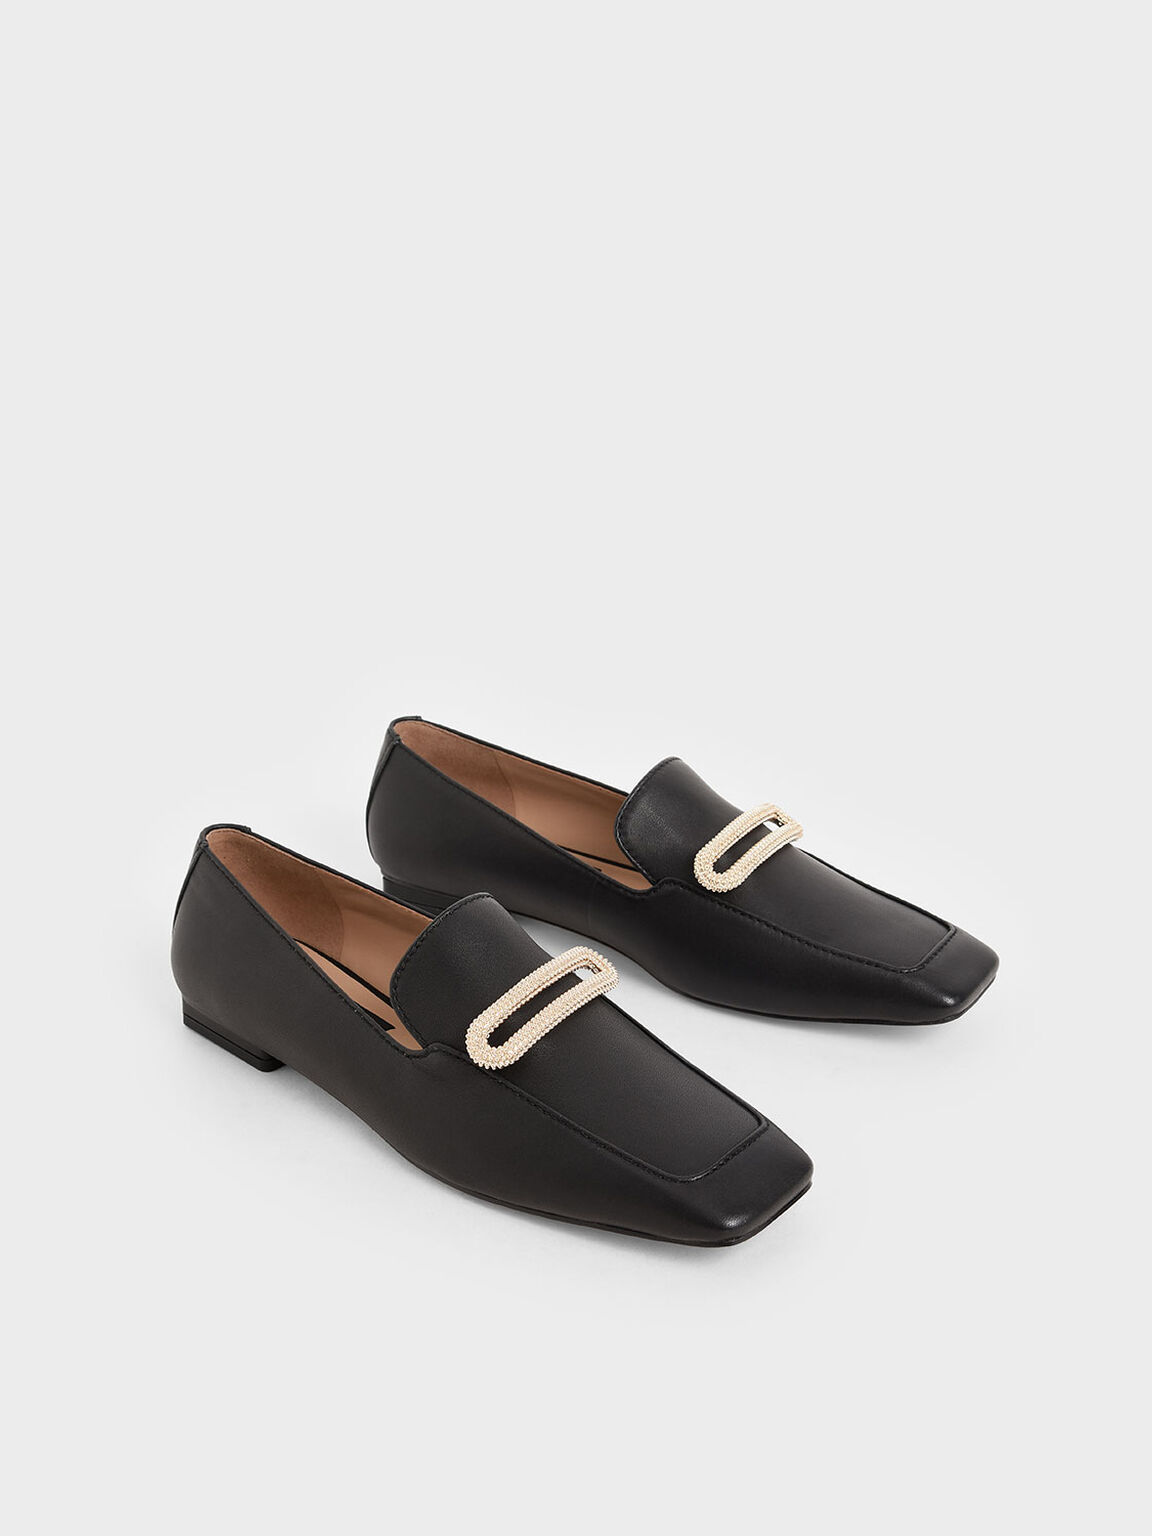 Leather Metallic Accent Loafers, Black, hi-res